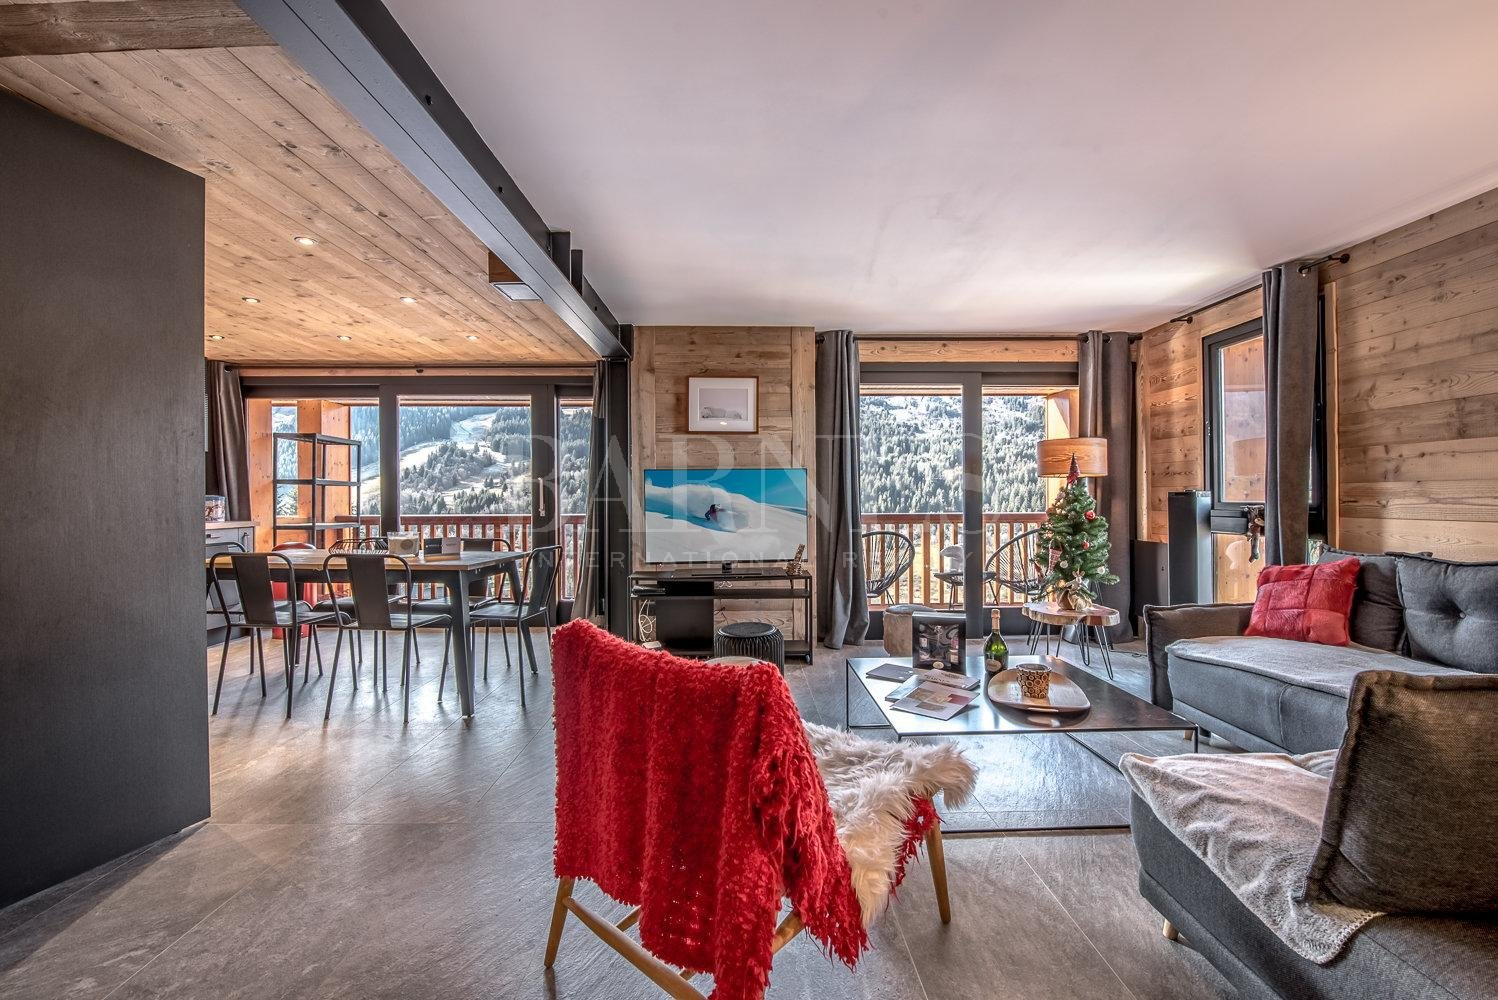 MOREL - Superb apartment close to the center and ski slopes picture 1